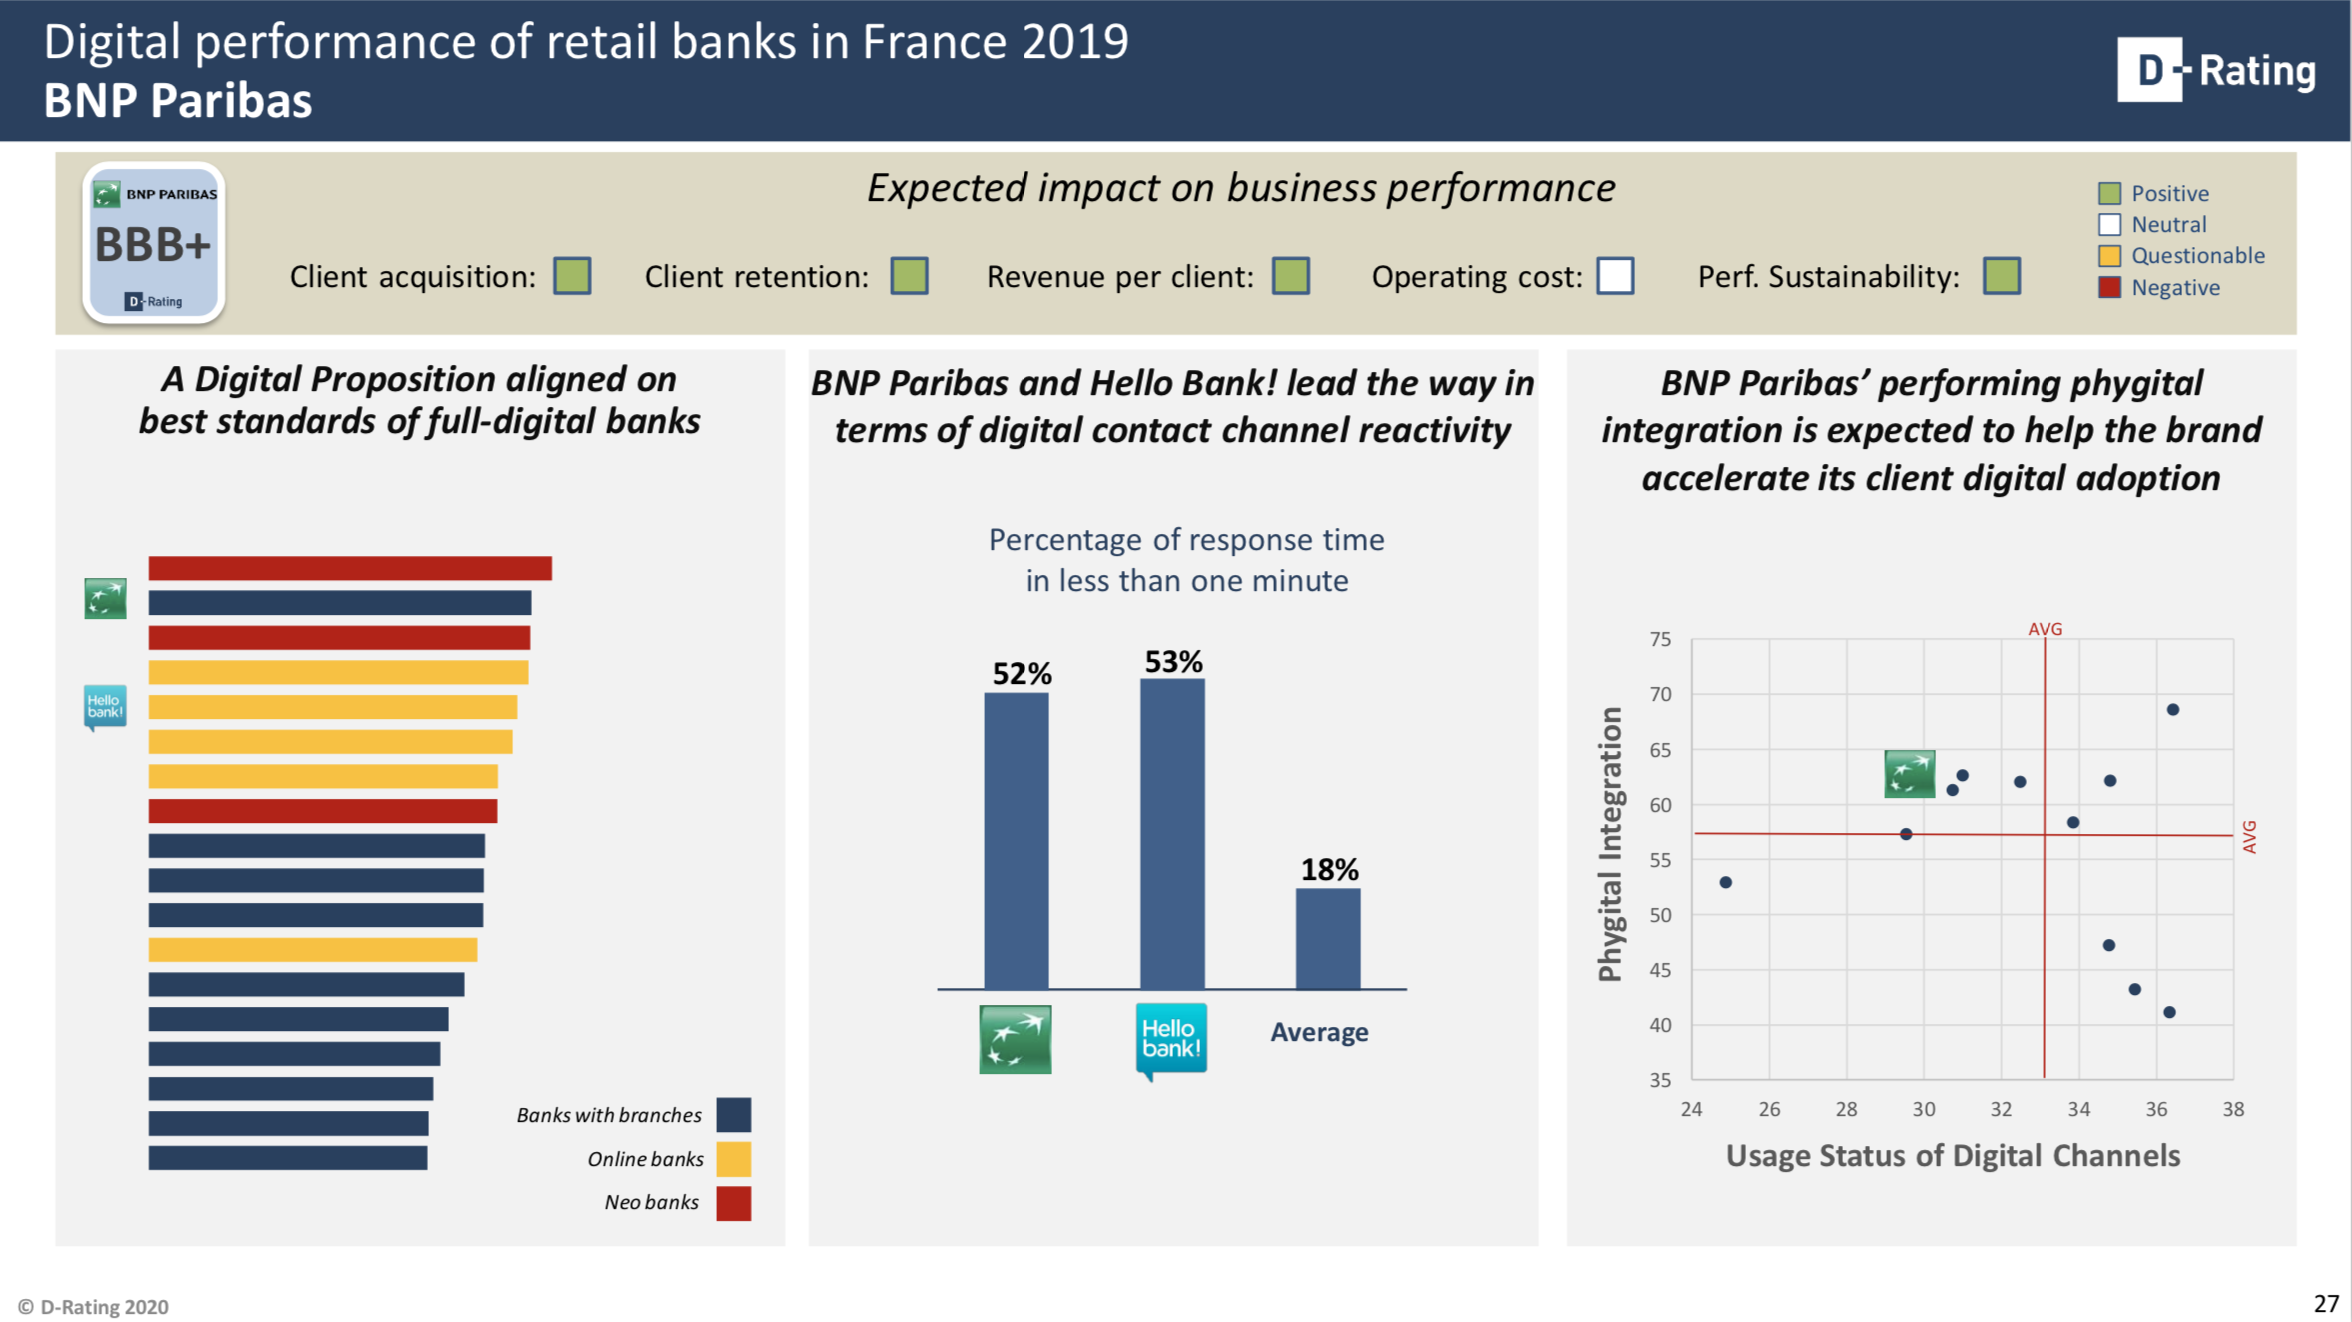 Digital performance of retail banks in France 2019